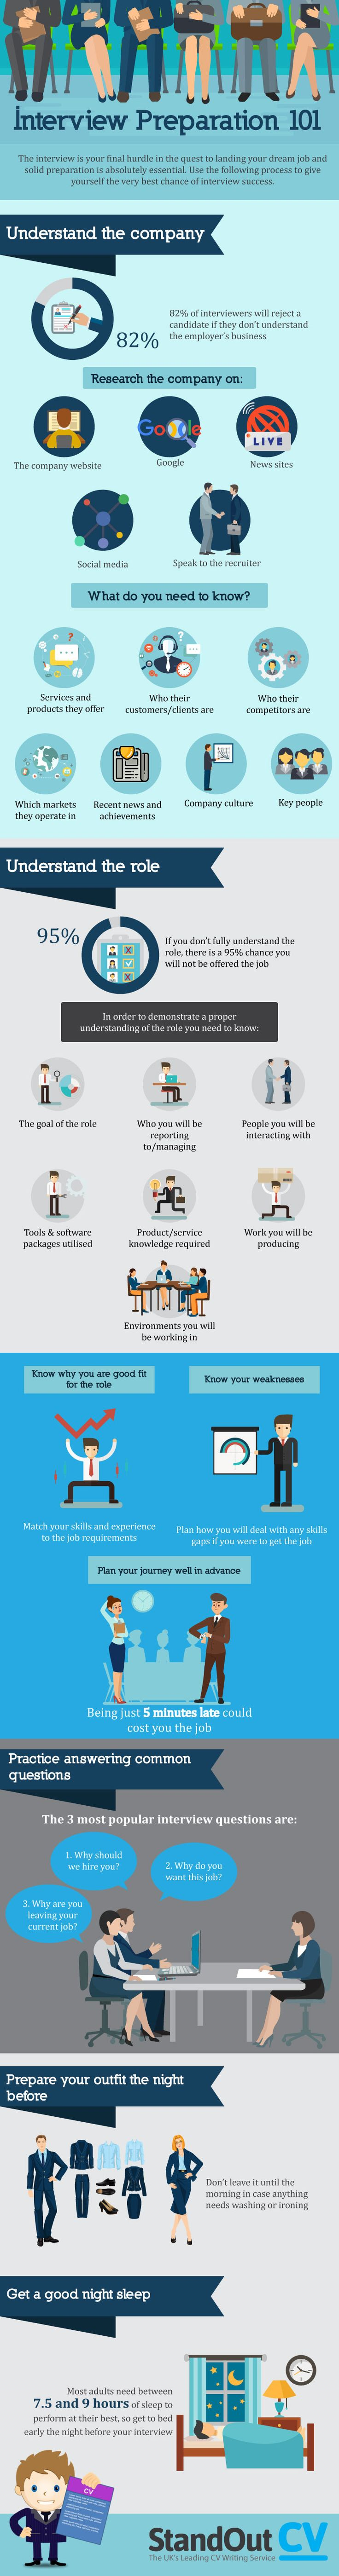 ideas about job interview questions job interview preparation 101 infographic